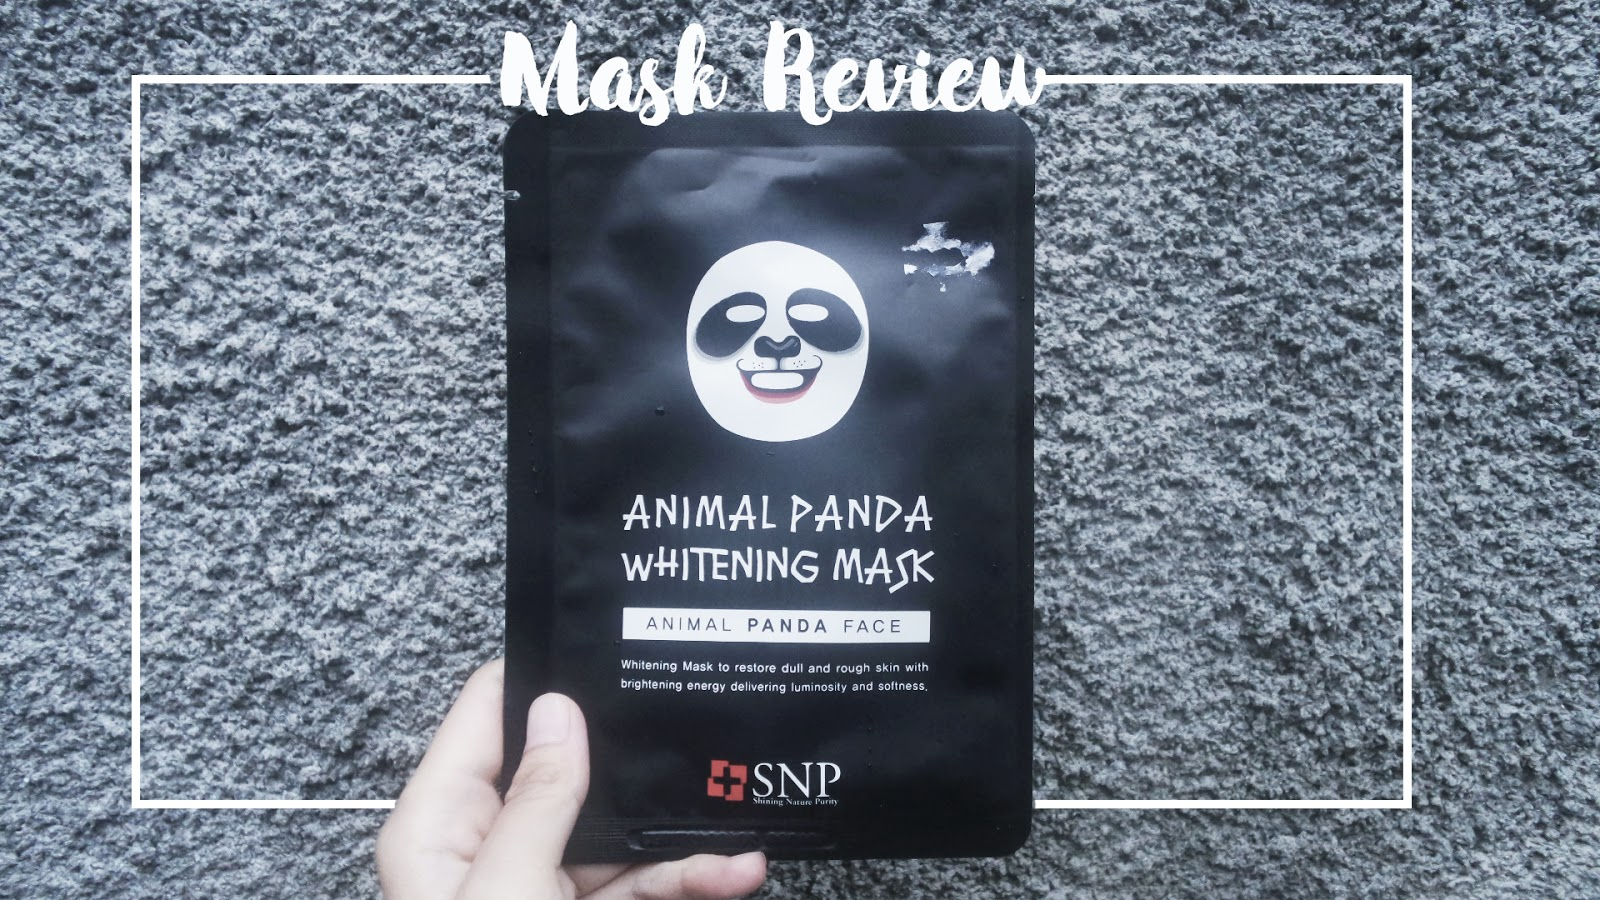 Review Snp Animal Panda Whitening Mask Windars Masker Face Hello Guys I Am Back Today With A New Of That Ive Purchased Awhile Ago Entah Kenapa Akhir Ini Jadi Addict